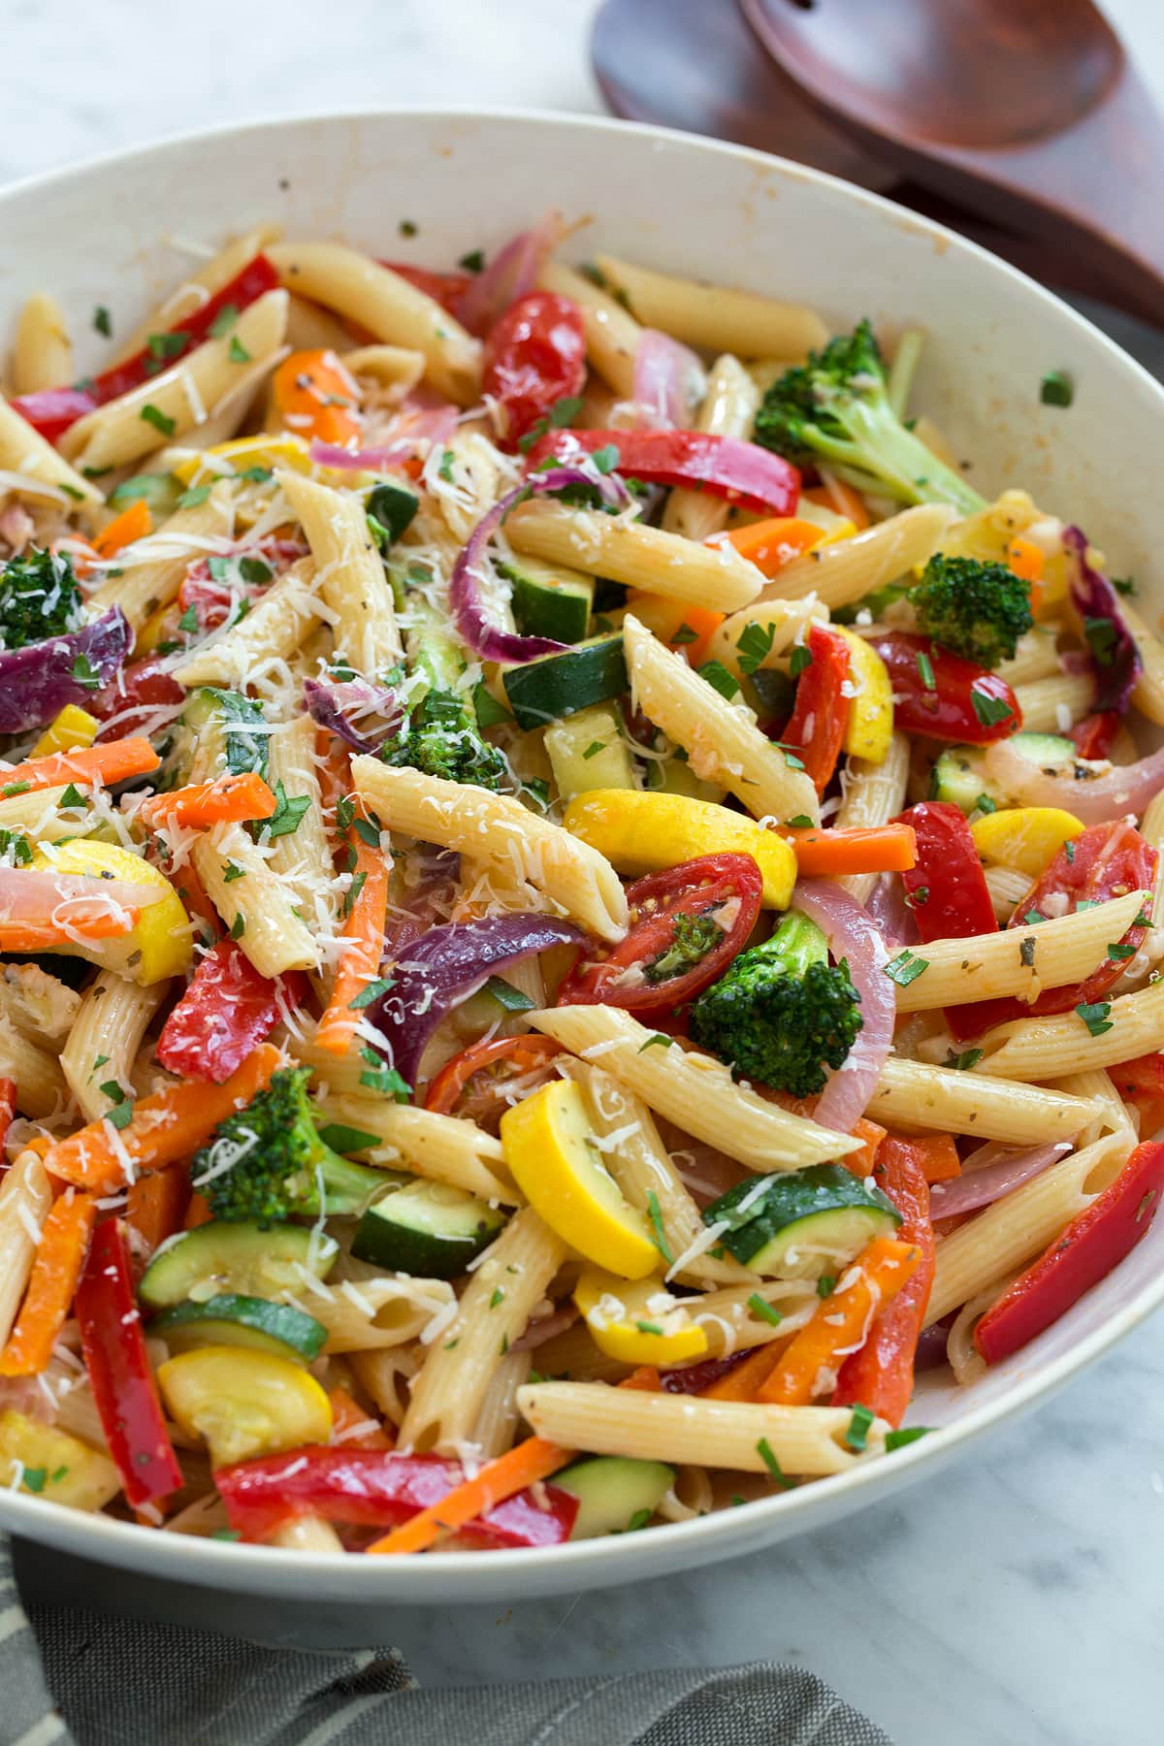 Pasta Primavera (Delicious Easy Recipe!) - Cooking Classy